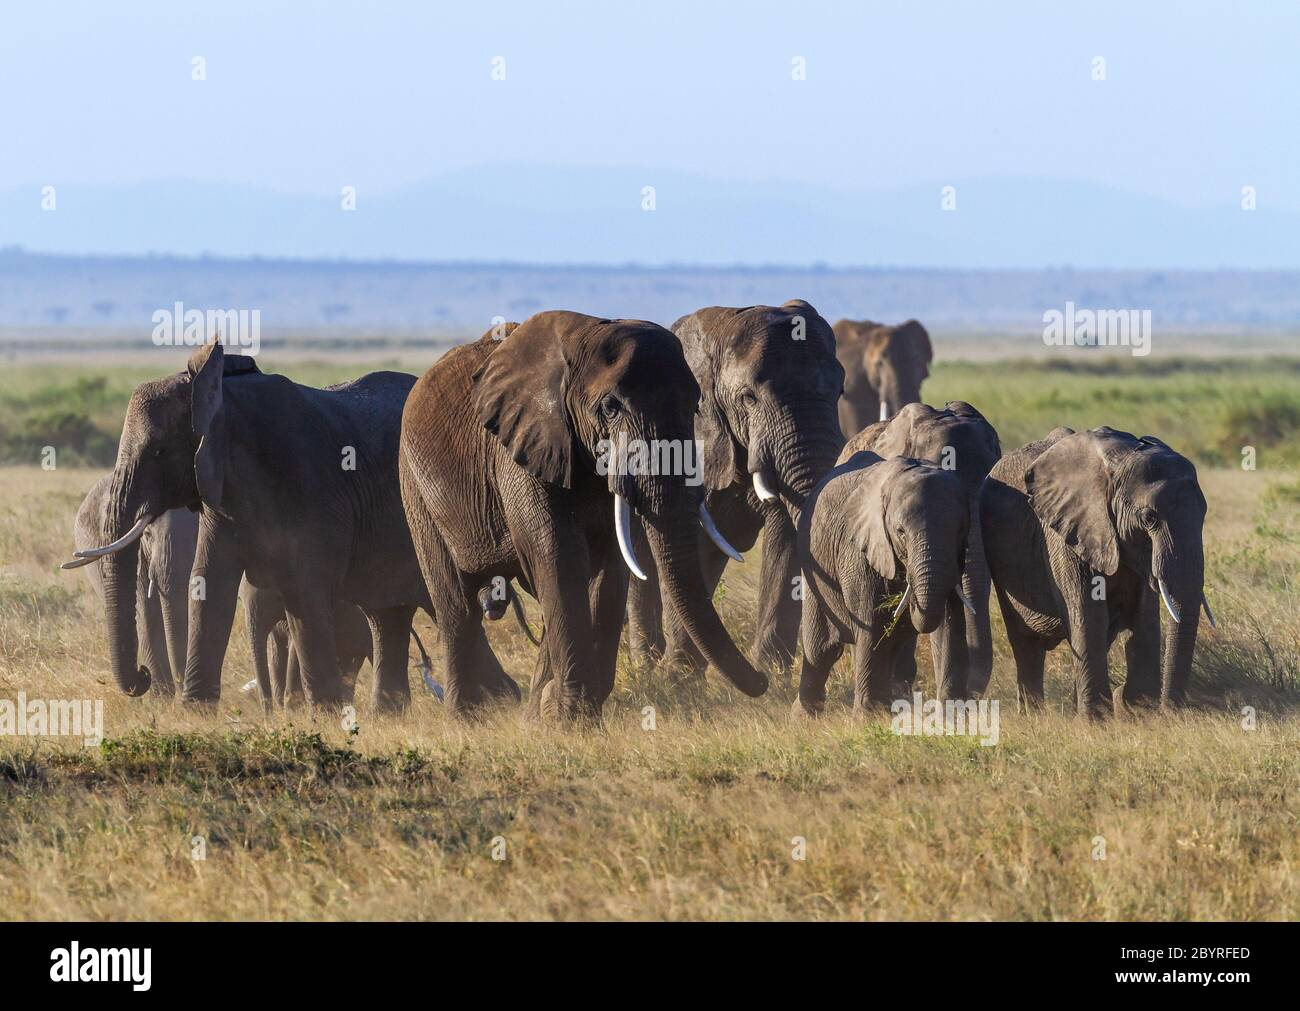 """African elephant herd on dusty African savannah, group of adults and calves close together. Amboseli National Park, Kenya, Africa. """"Loxodonta Africana Stock Photo"""